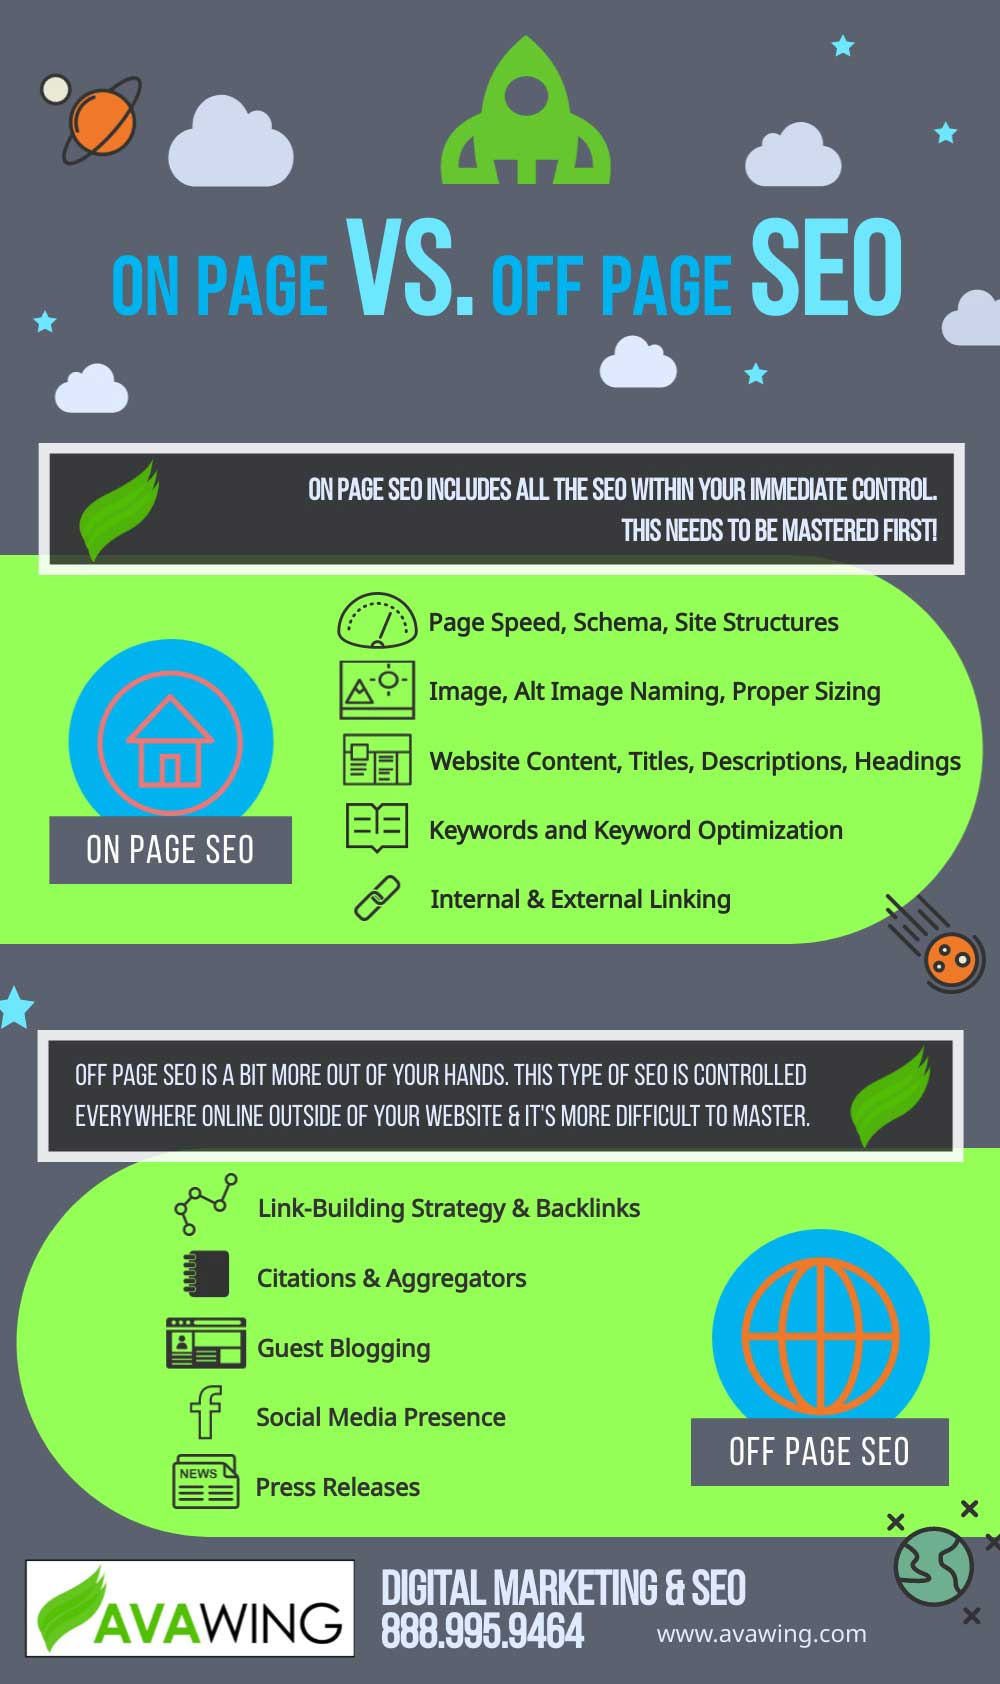 on page versus off page SEO infographic